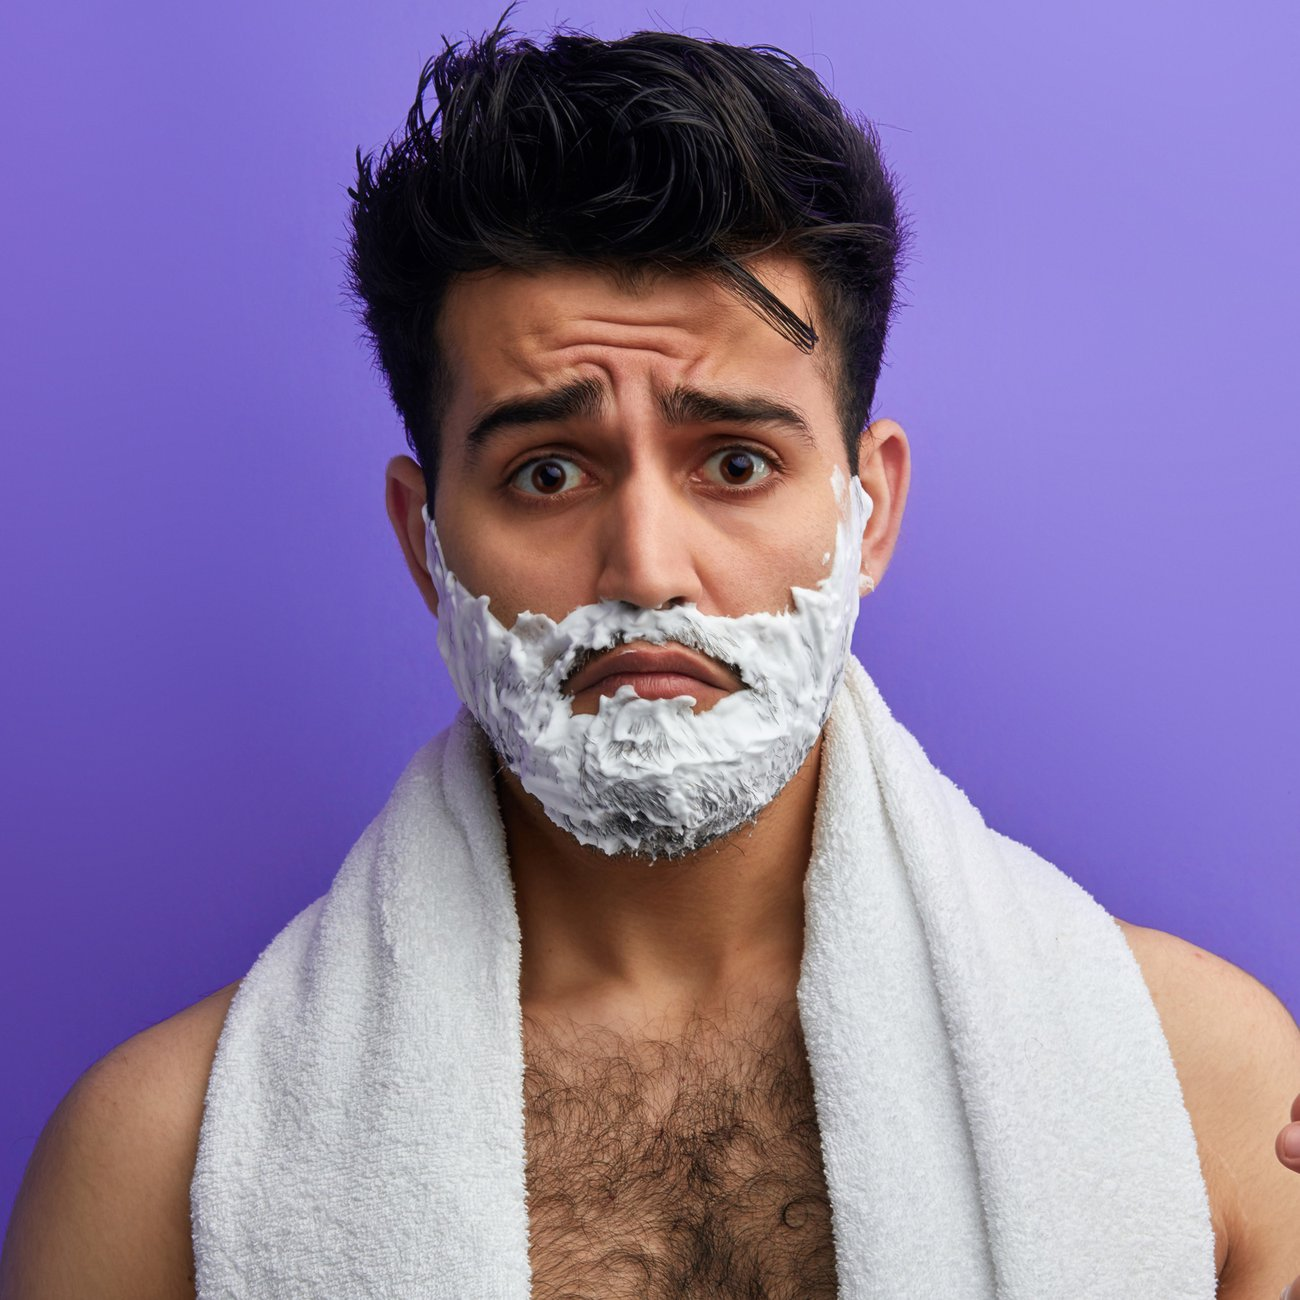 Shave the right way and avoid irritation and spots